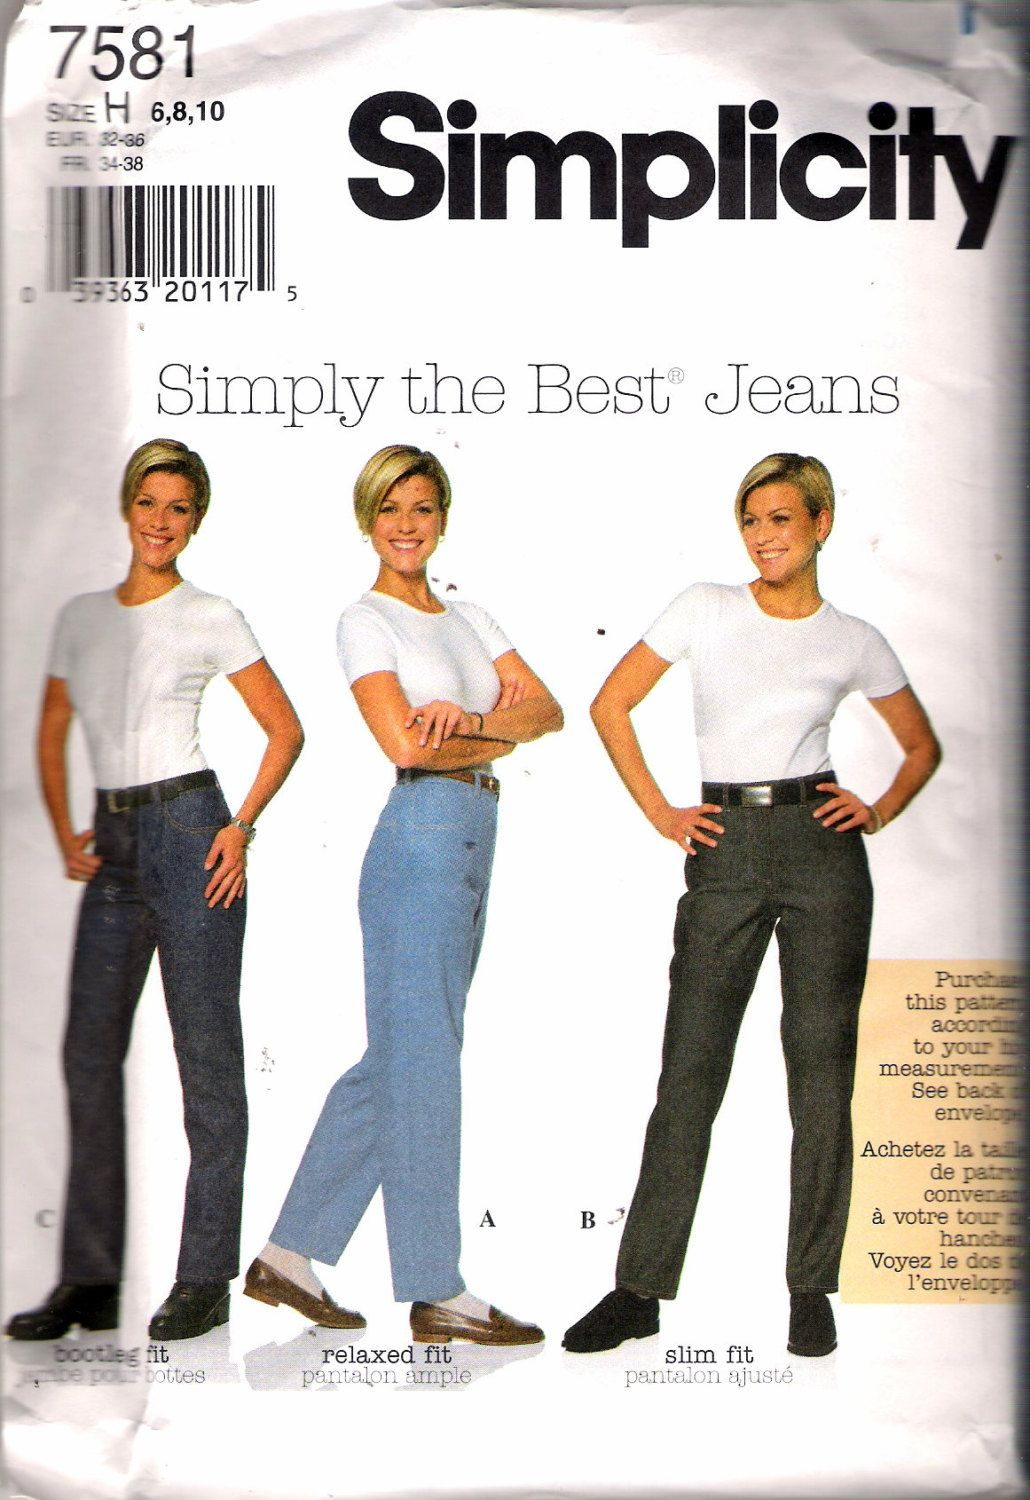 1997 Simplicity 7581 Simply the Best Jeans Sewing Pattern Size H 6 - 8 - 10  UNCUT by Recycledelic1 on Etsy